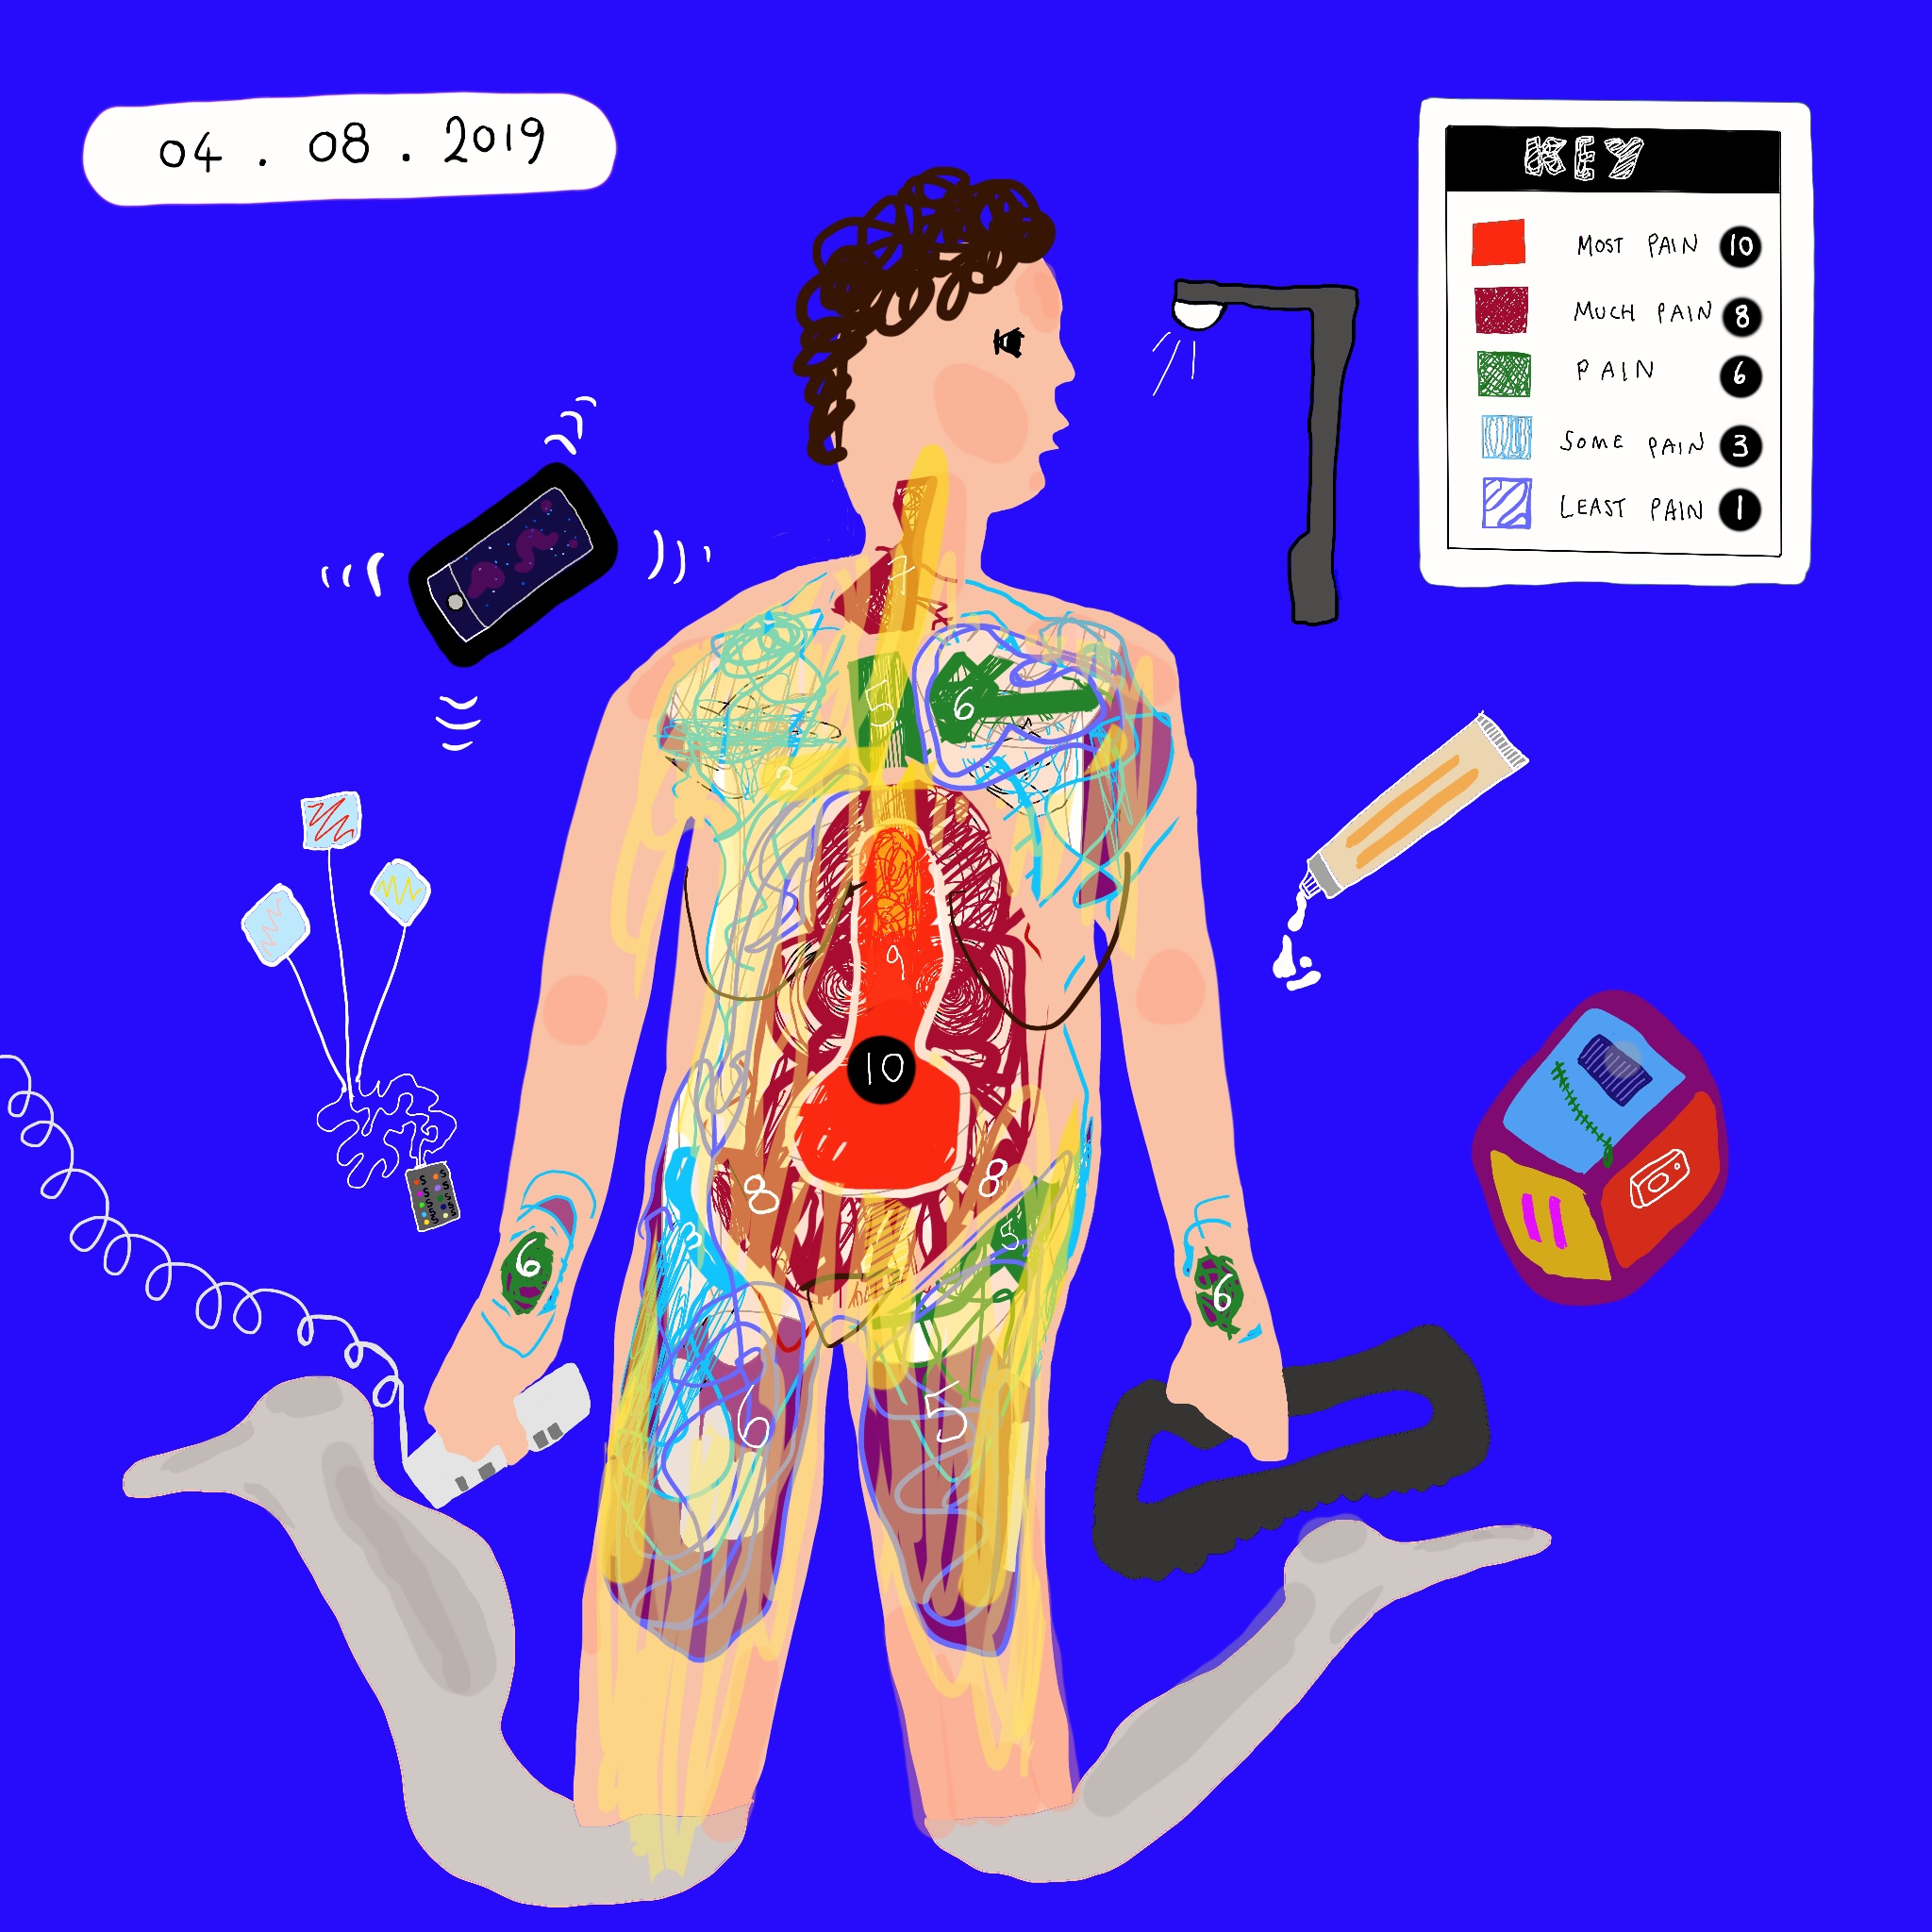 A digital painting of Touretteshero showing a colour-coded map of pain on Touretteshero's body. In top corner of the image, a key showing the intensity of the pain on a scale of 1 to 10 corresponding to a colour. In the top left corner of the image is the date (04.08.2019) . Helpful objects surround her eg. phone, alarm and pain relief cream and a lamppost. The pain is most severe in Touretteshero's lower torso but is also felt throughout the body including the wrists.